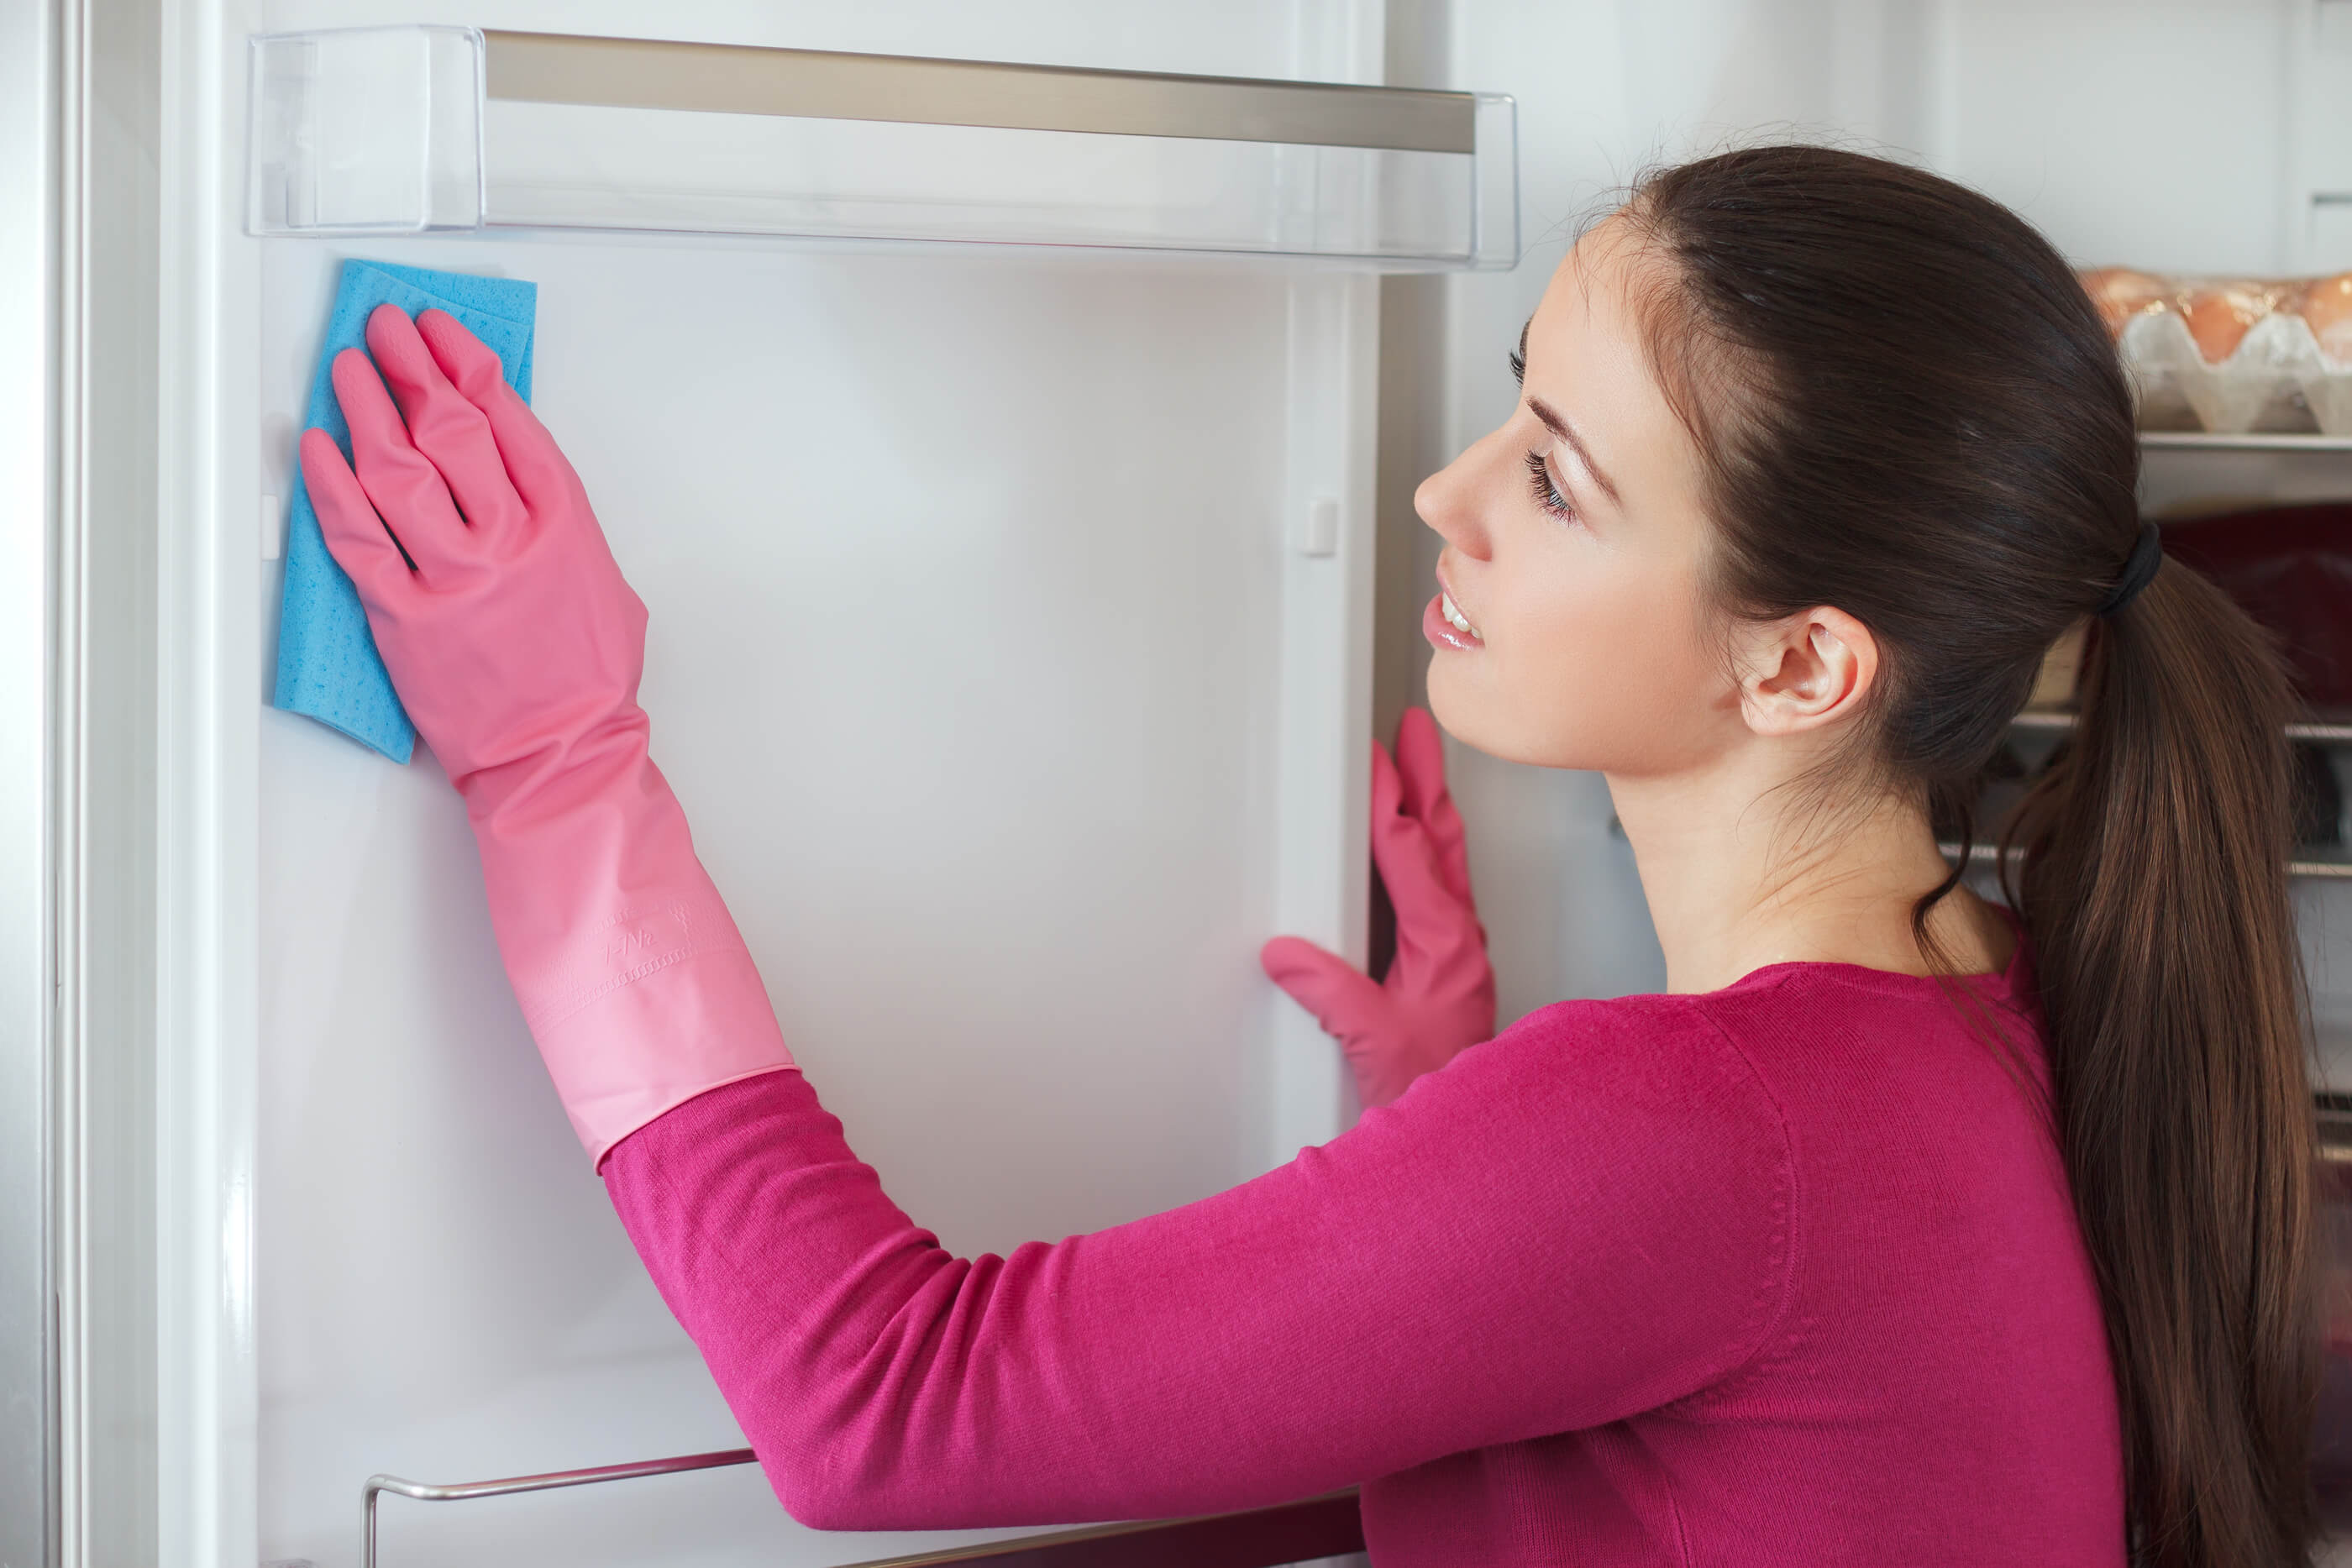 woman-preparing-refrigerator-before-leaving-on-vacation